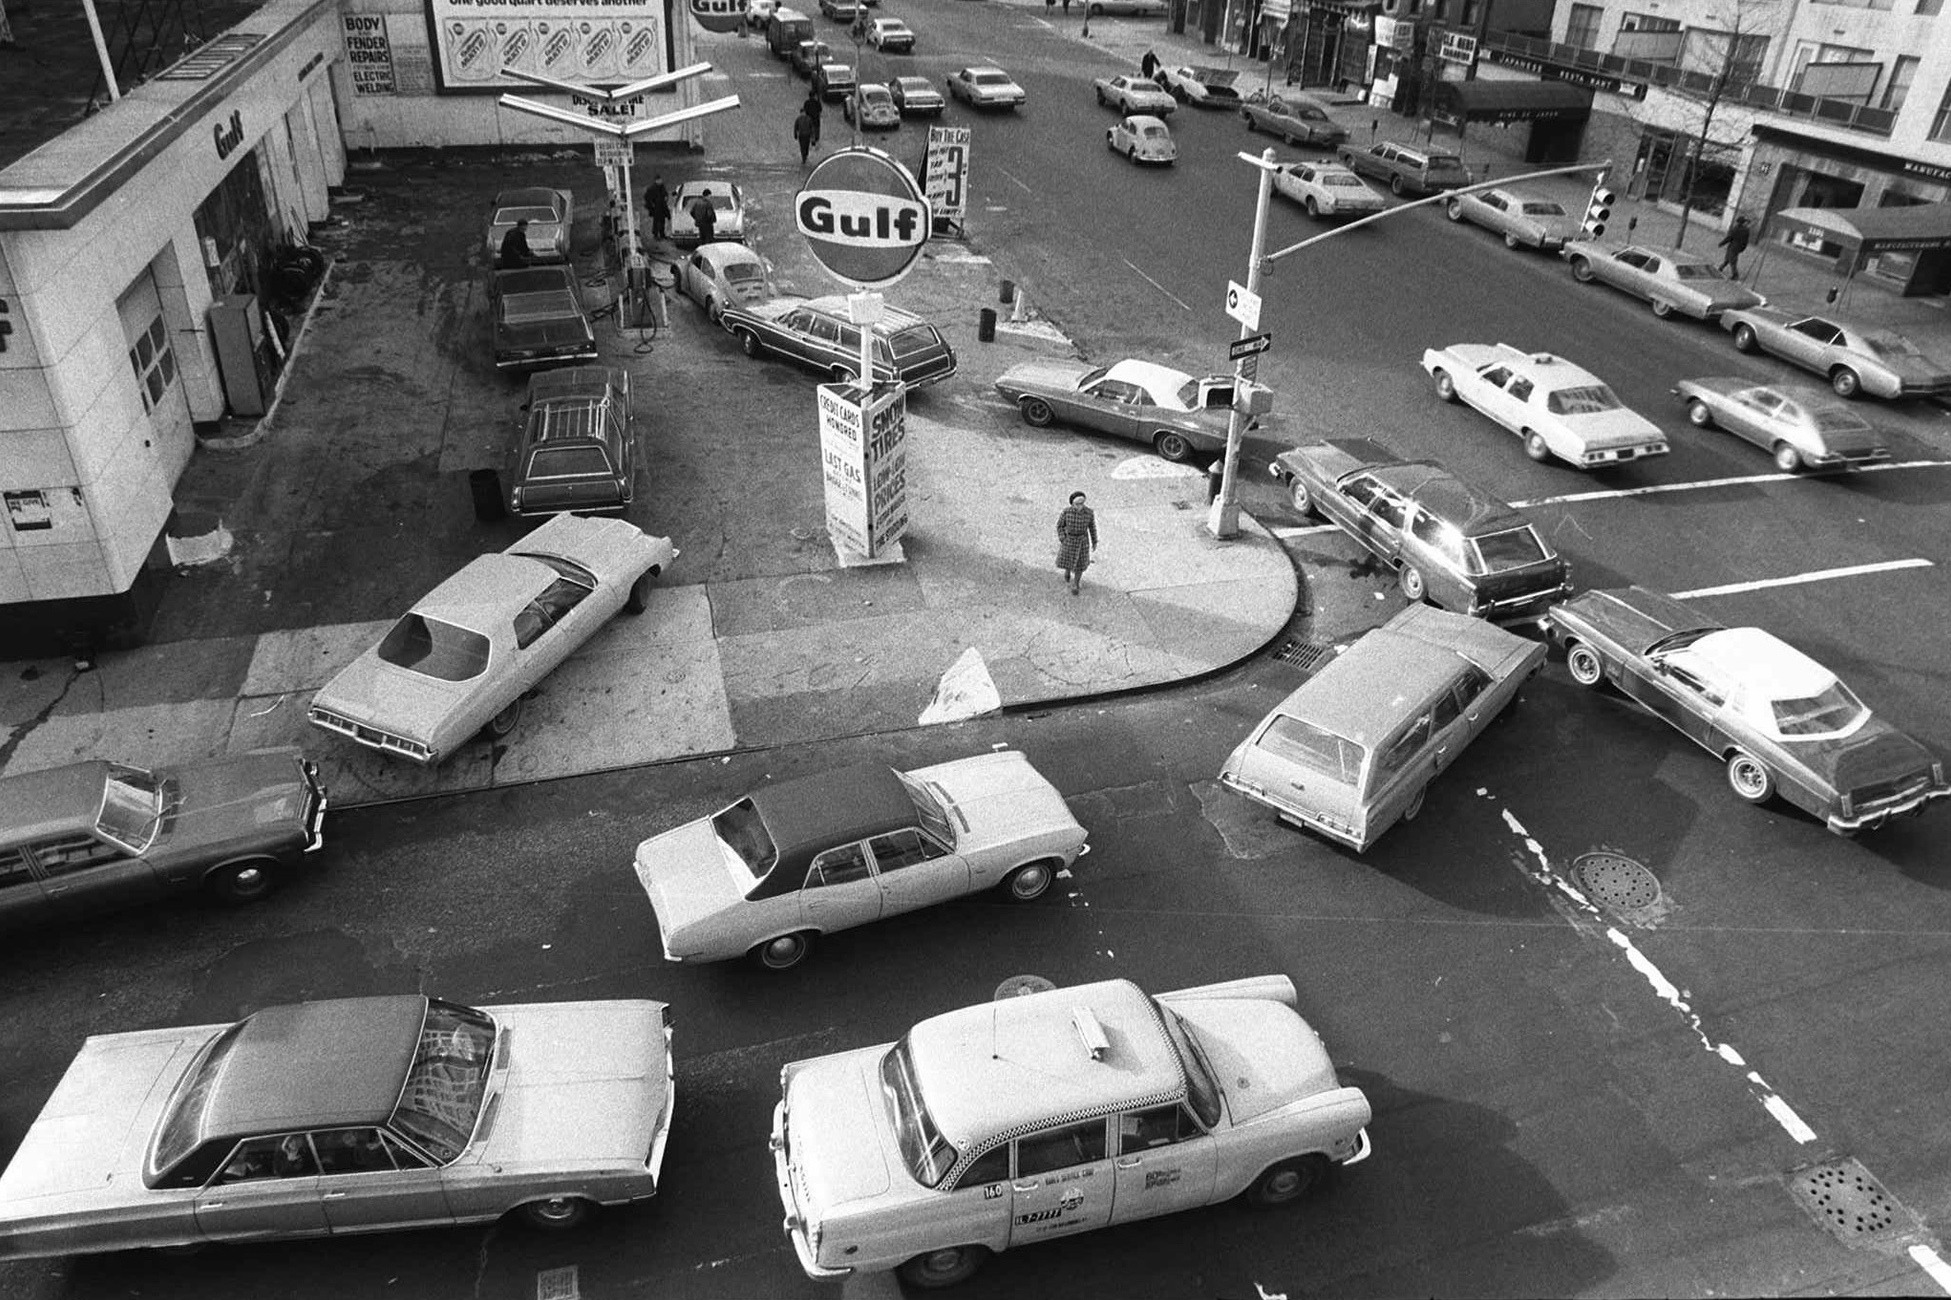 Gas Lines Evoke Memories Of Oil Crises In The 1970s : The Picture Show : NPR